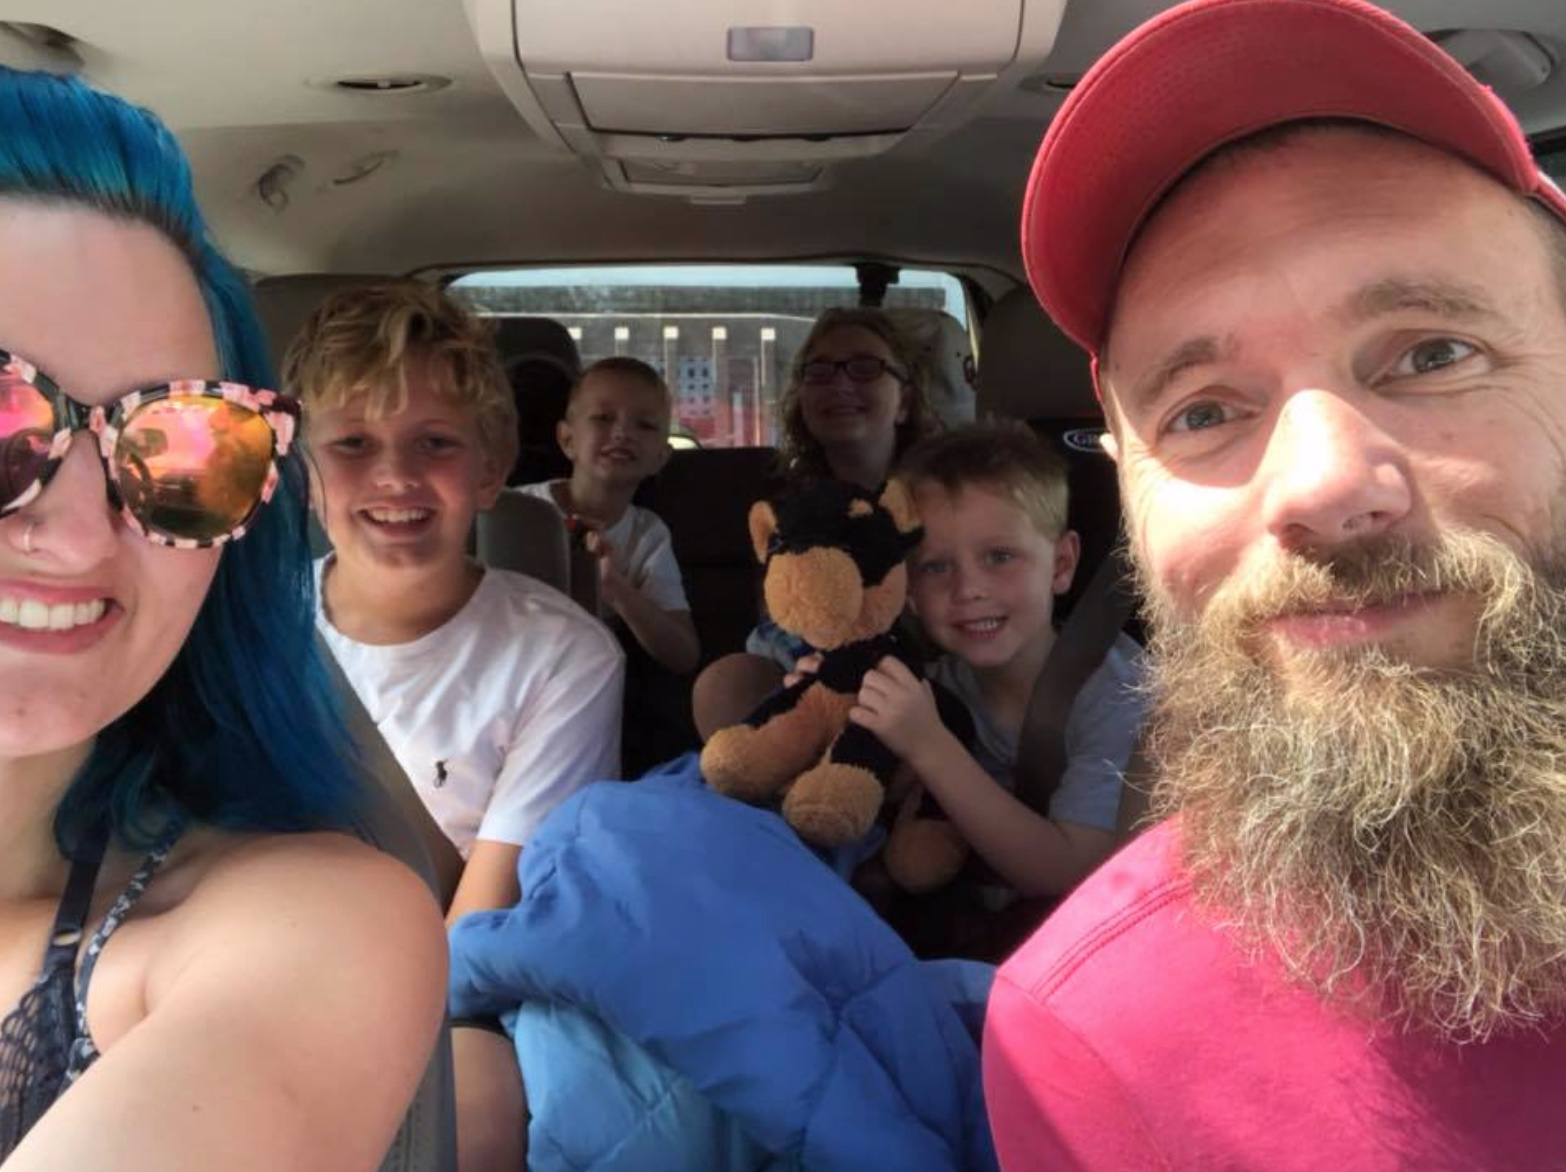 Katie with her family on a road trip